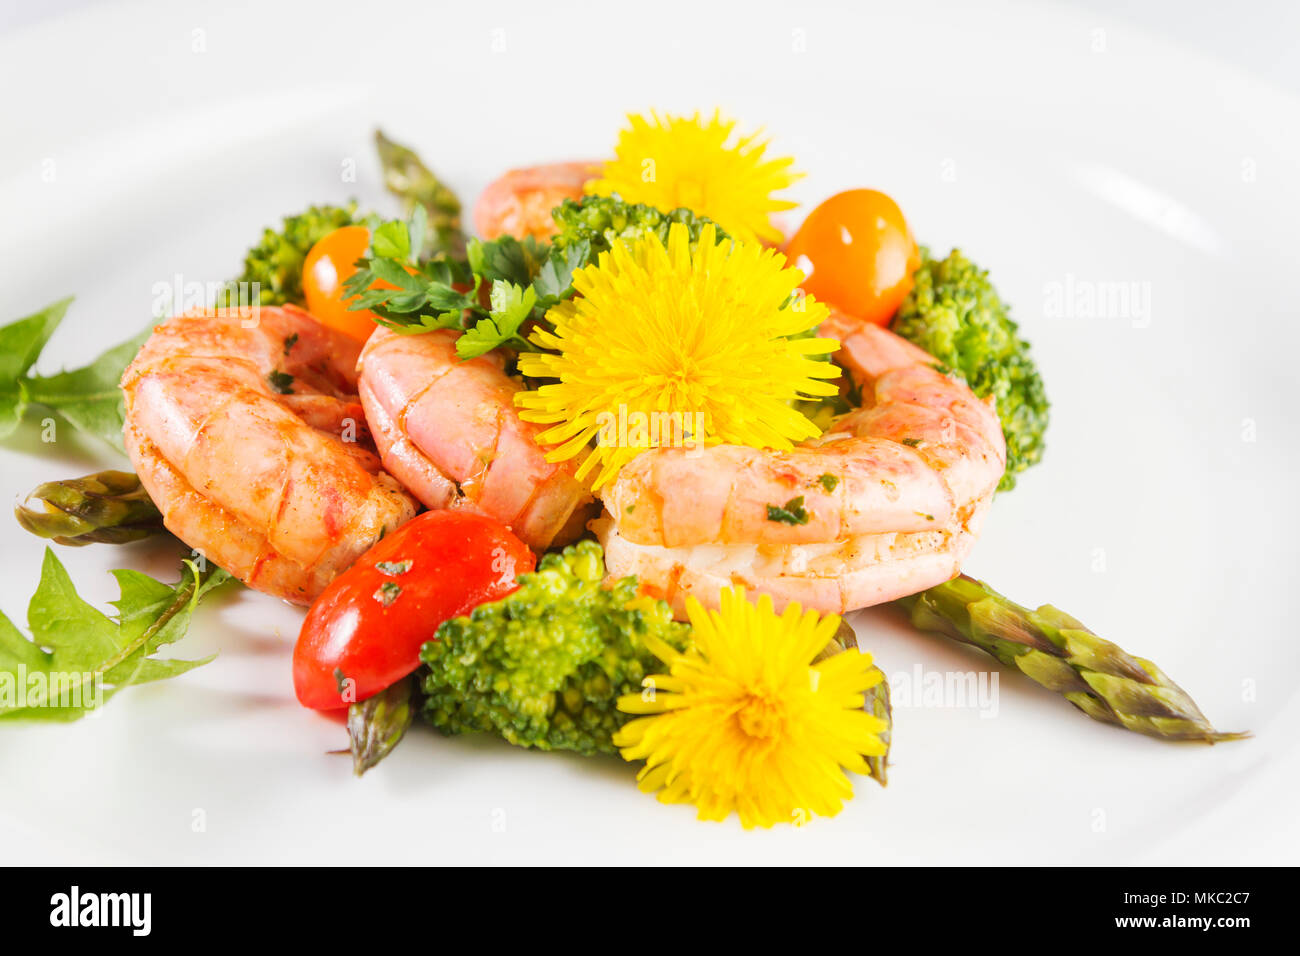 Prawns Asparagus And Broccoli With Edible Dandelion Flowers